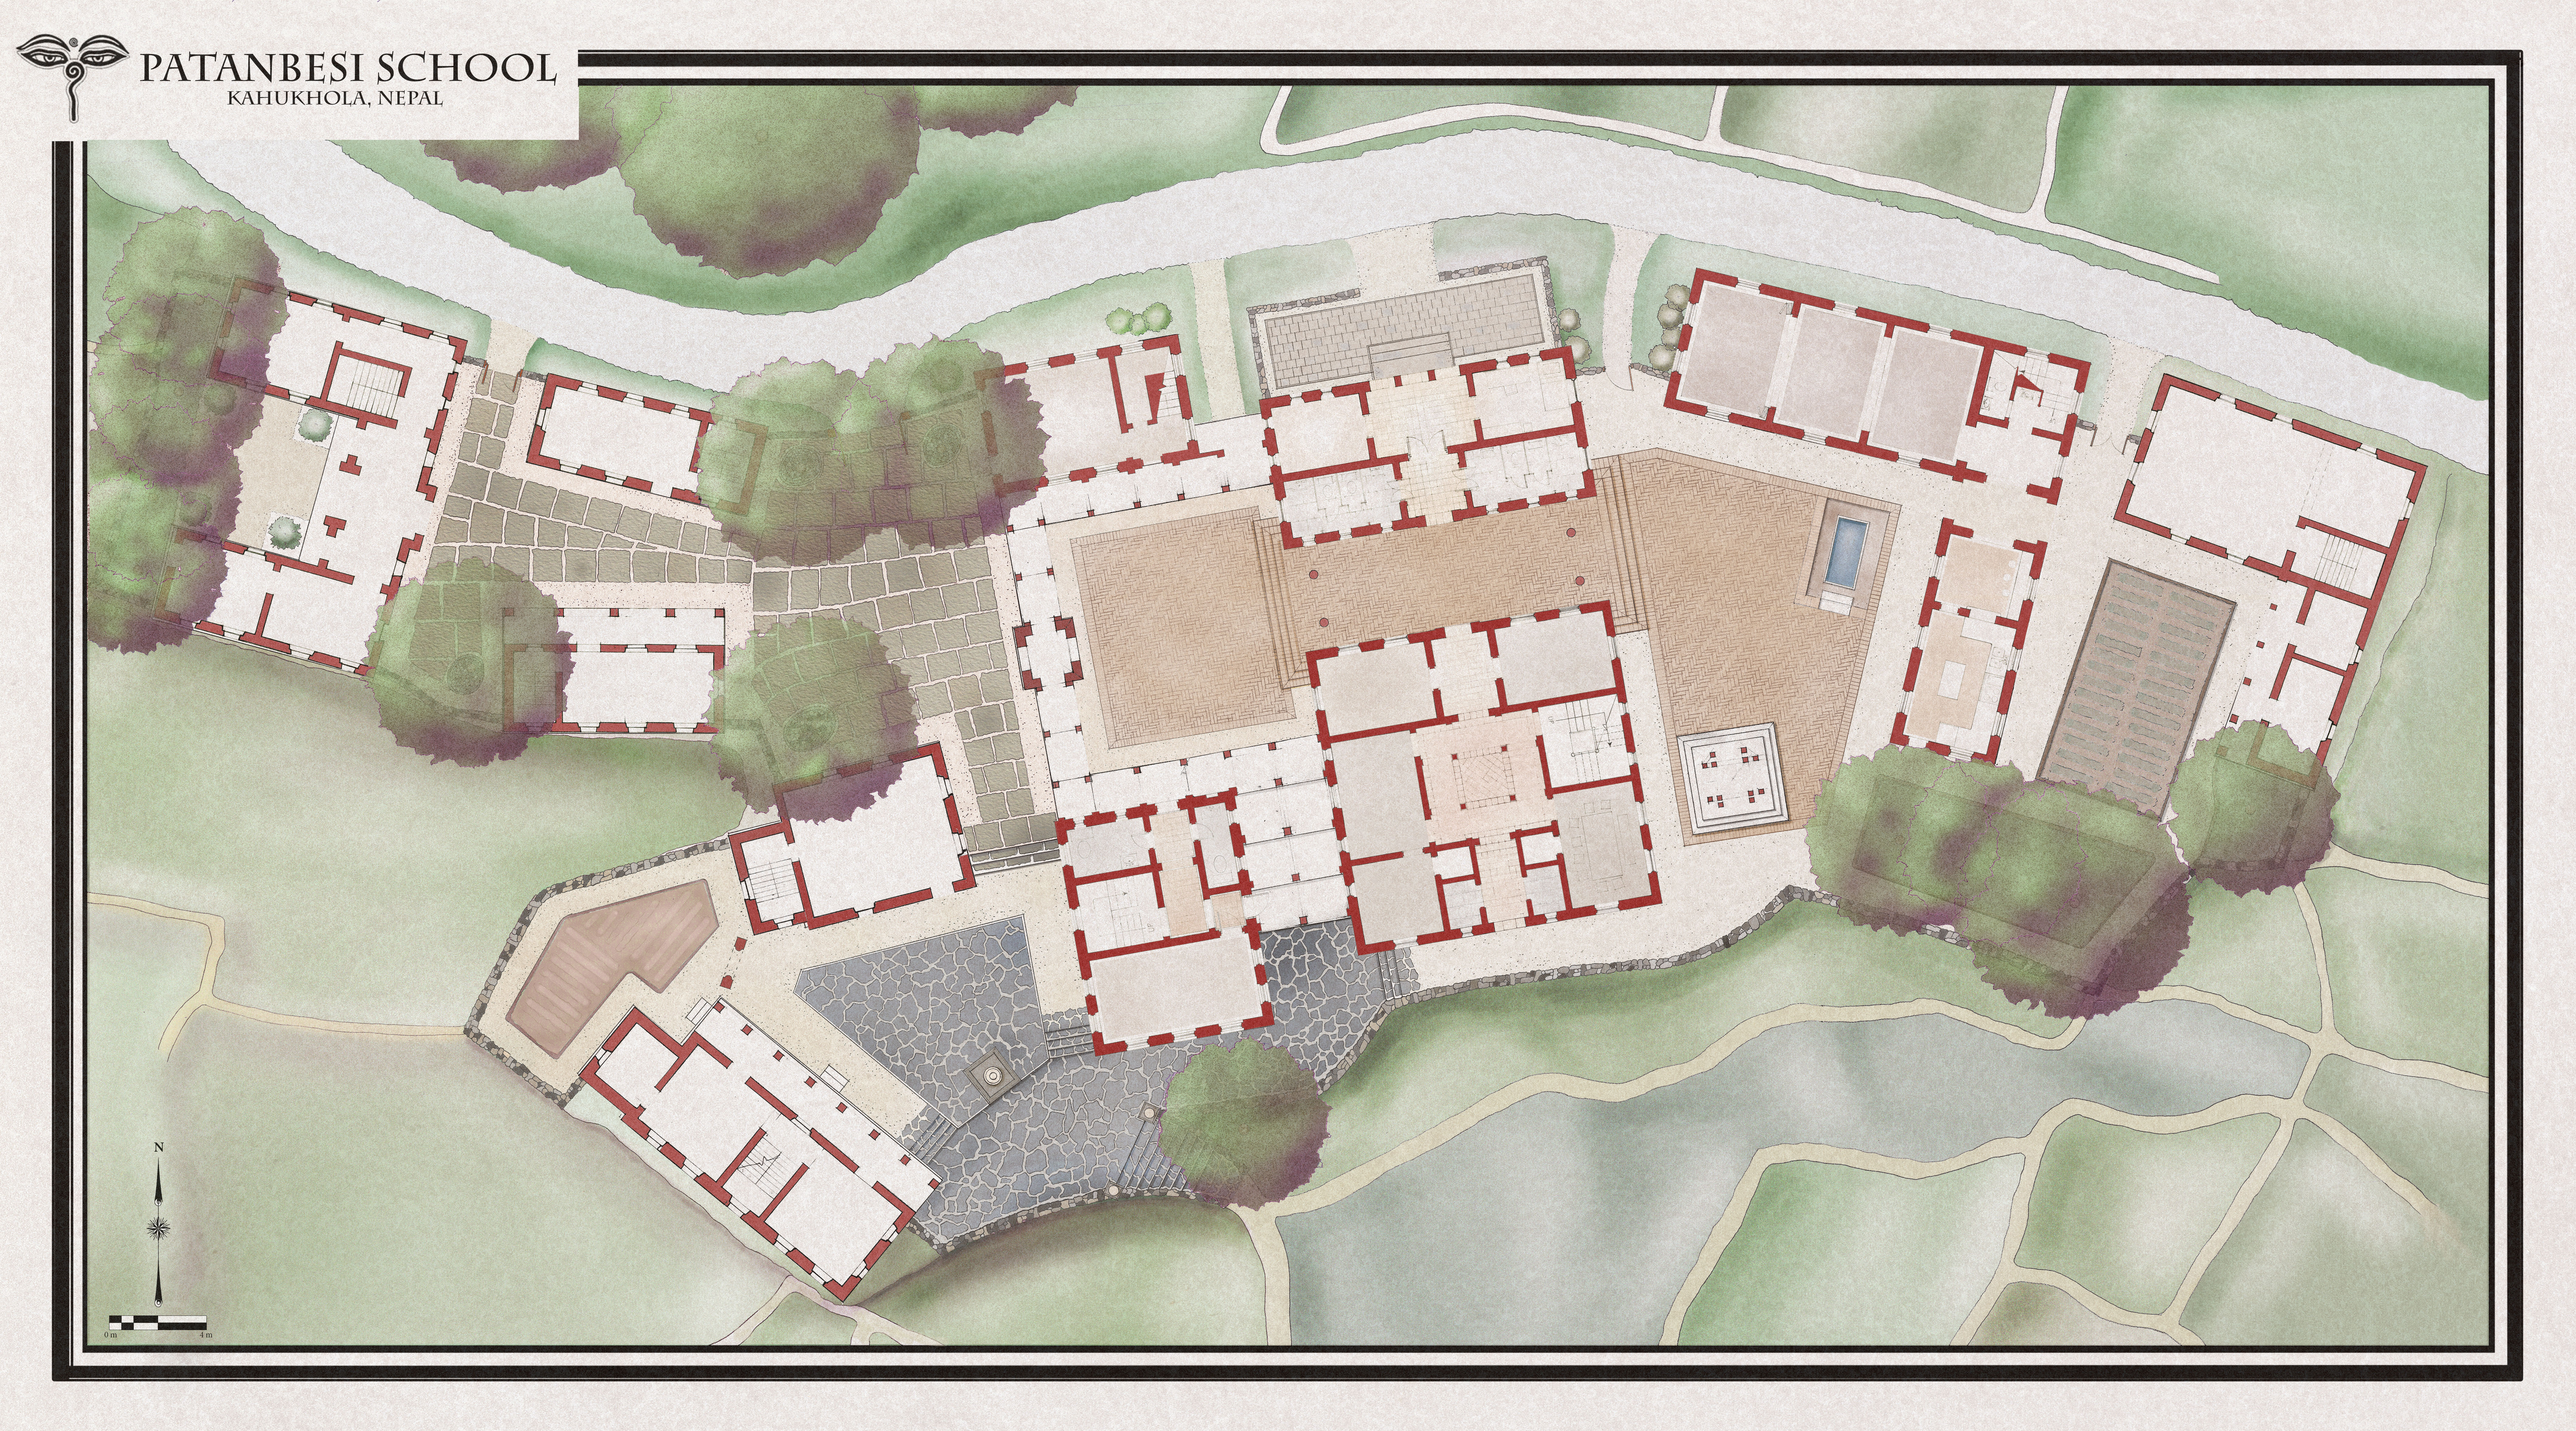 Patanbesi School Plan